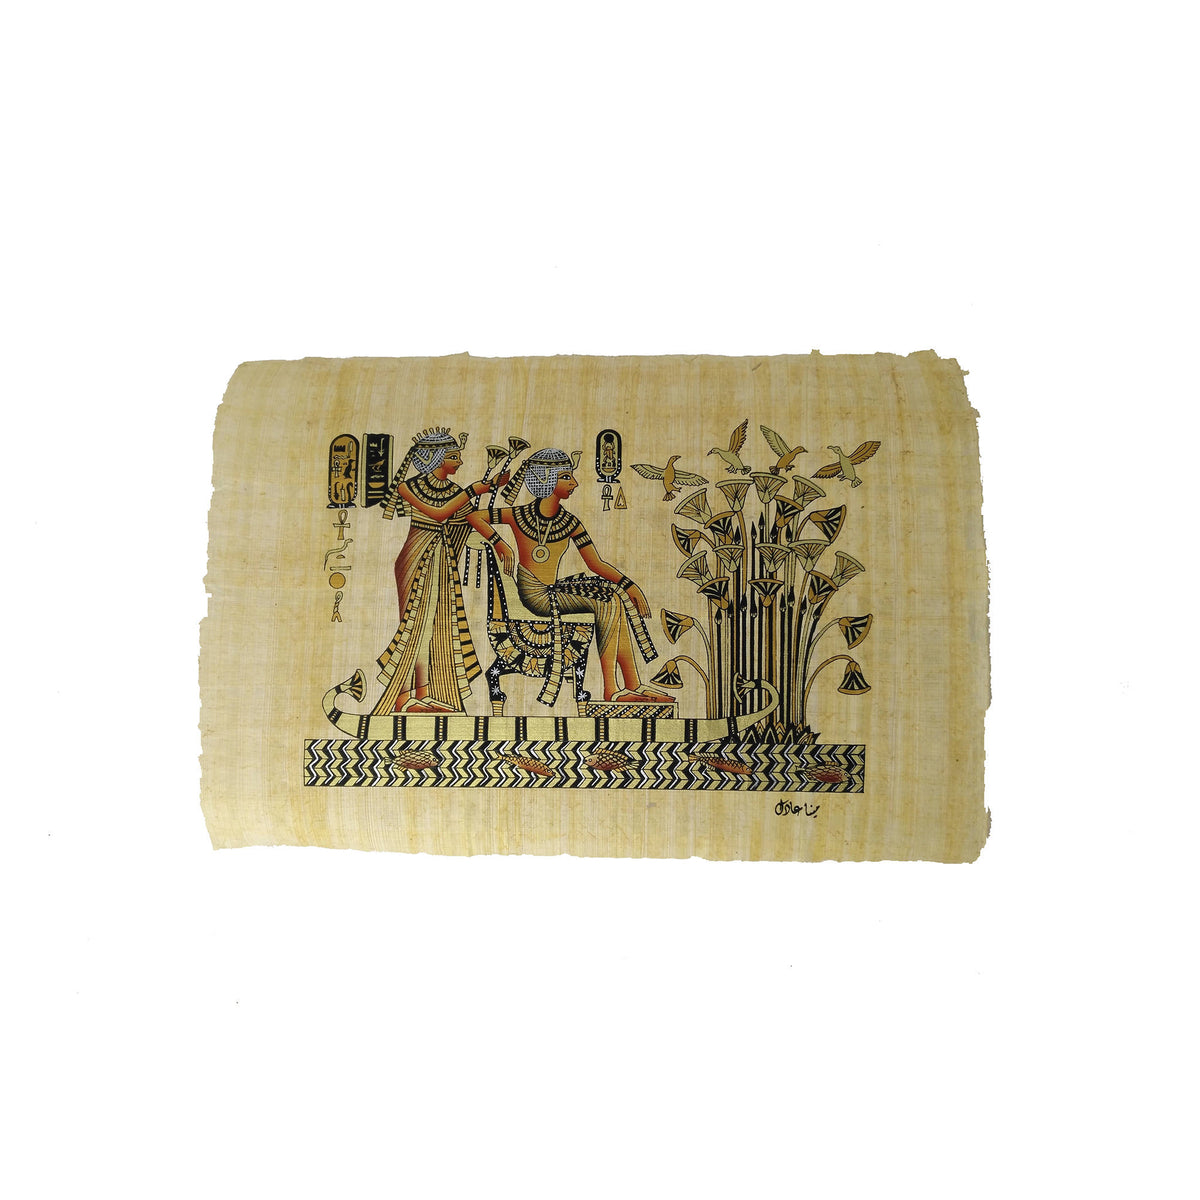 King Tutankamun and by Queen Ankhesenamun on Nile Boat - 20x30cm Papyrus